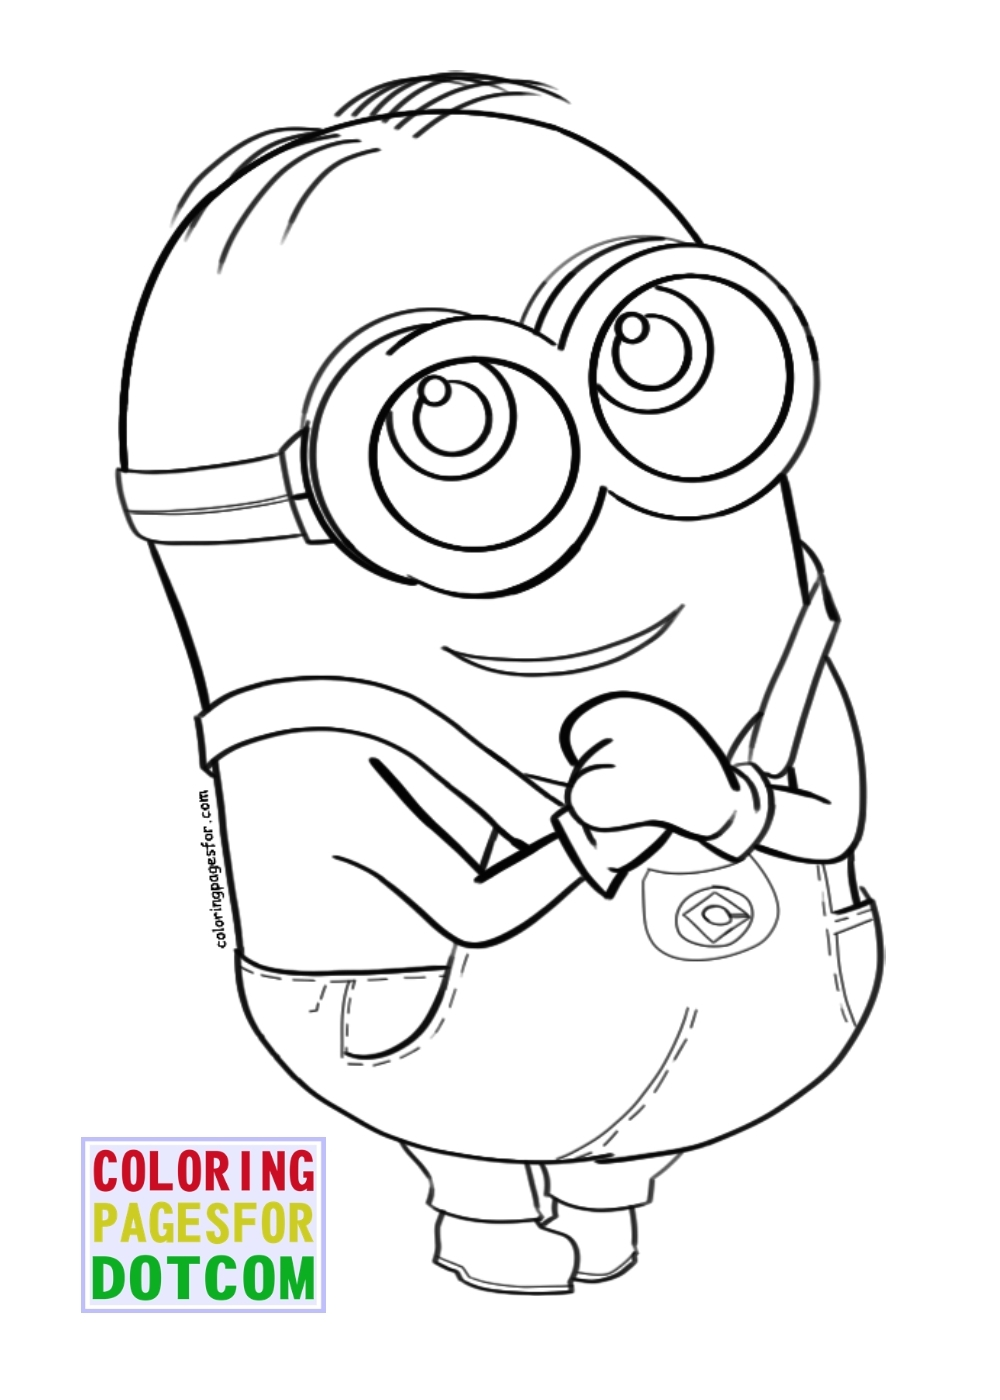 free printable coloring pages - 6668